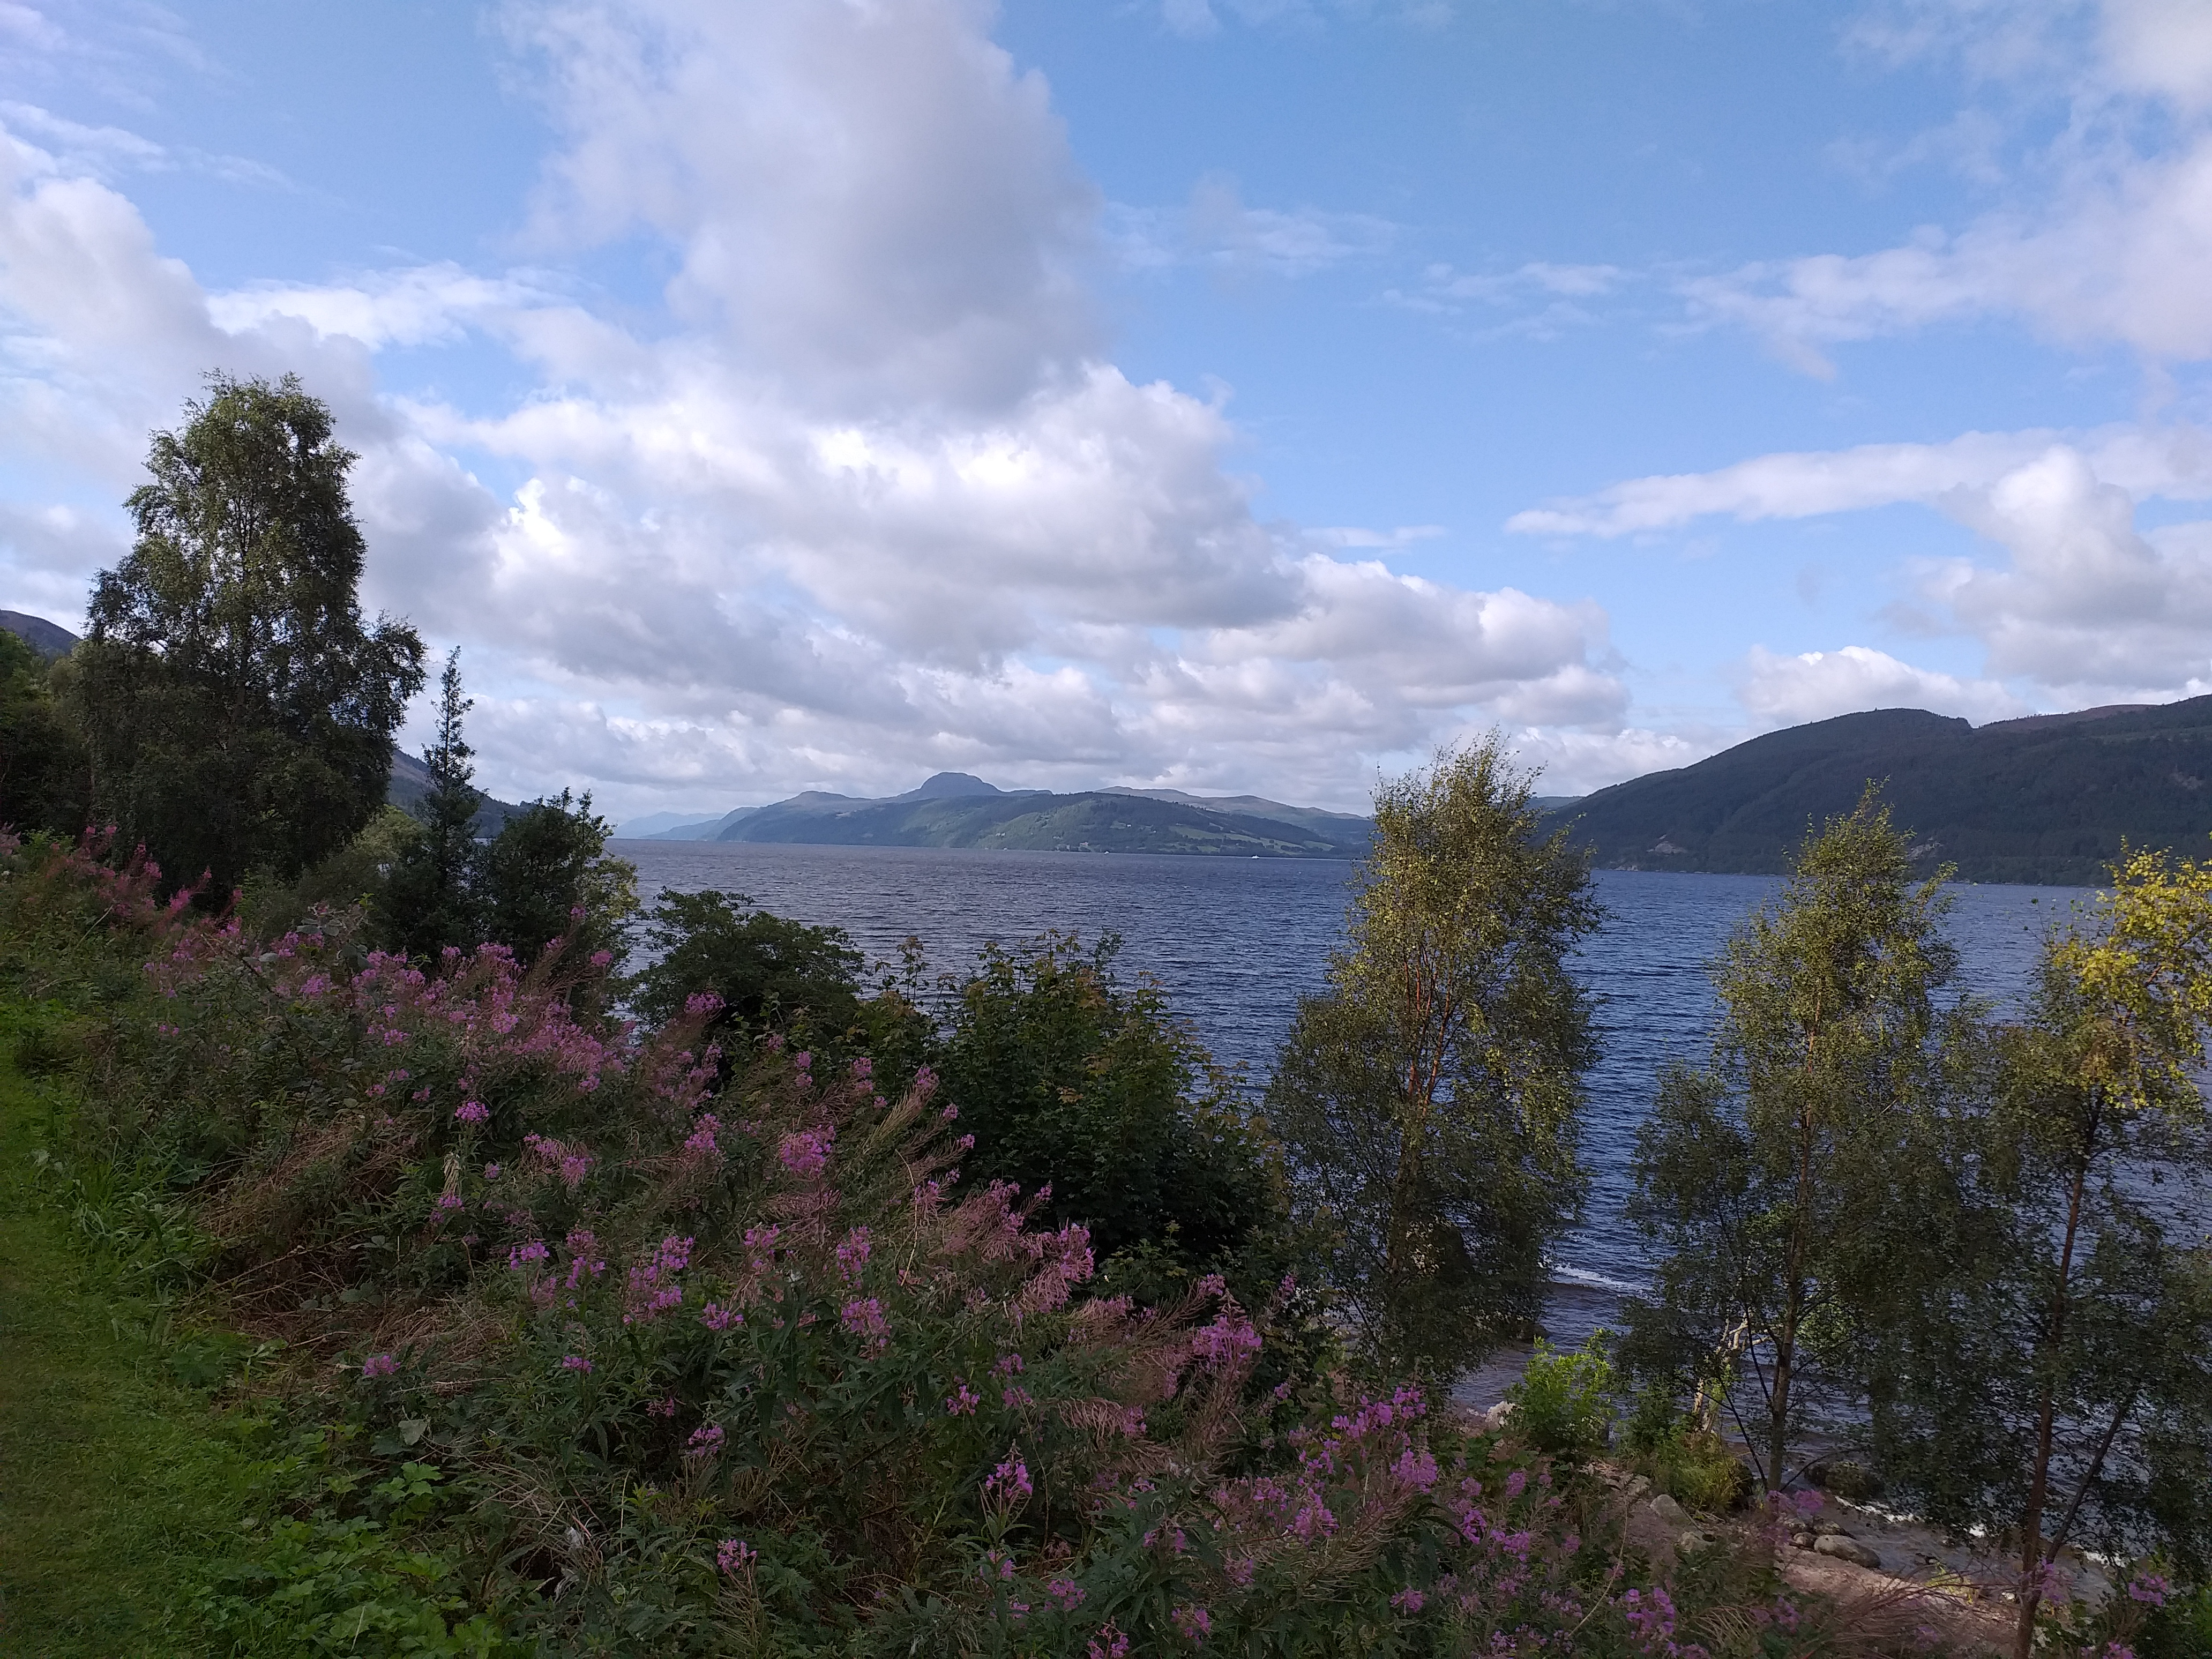 View of Loch Ness and mountains in the Scottish Highlands